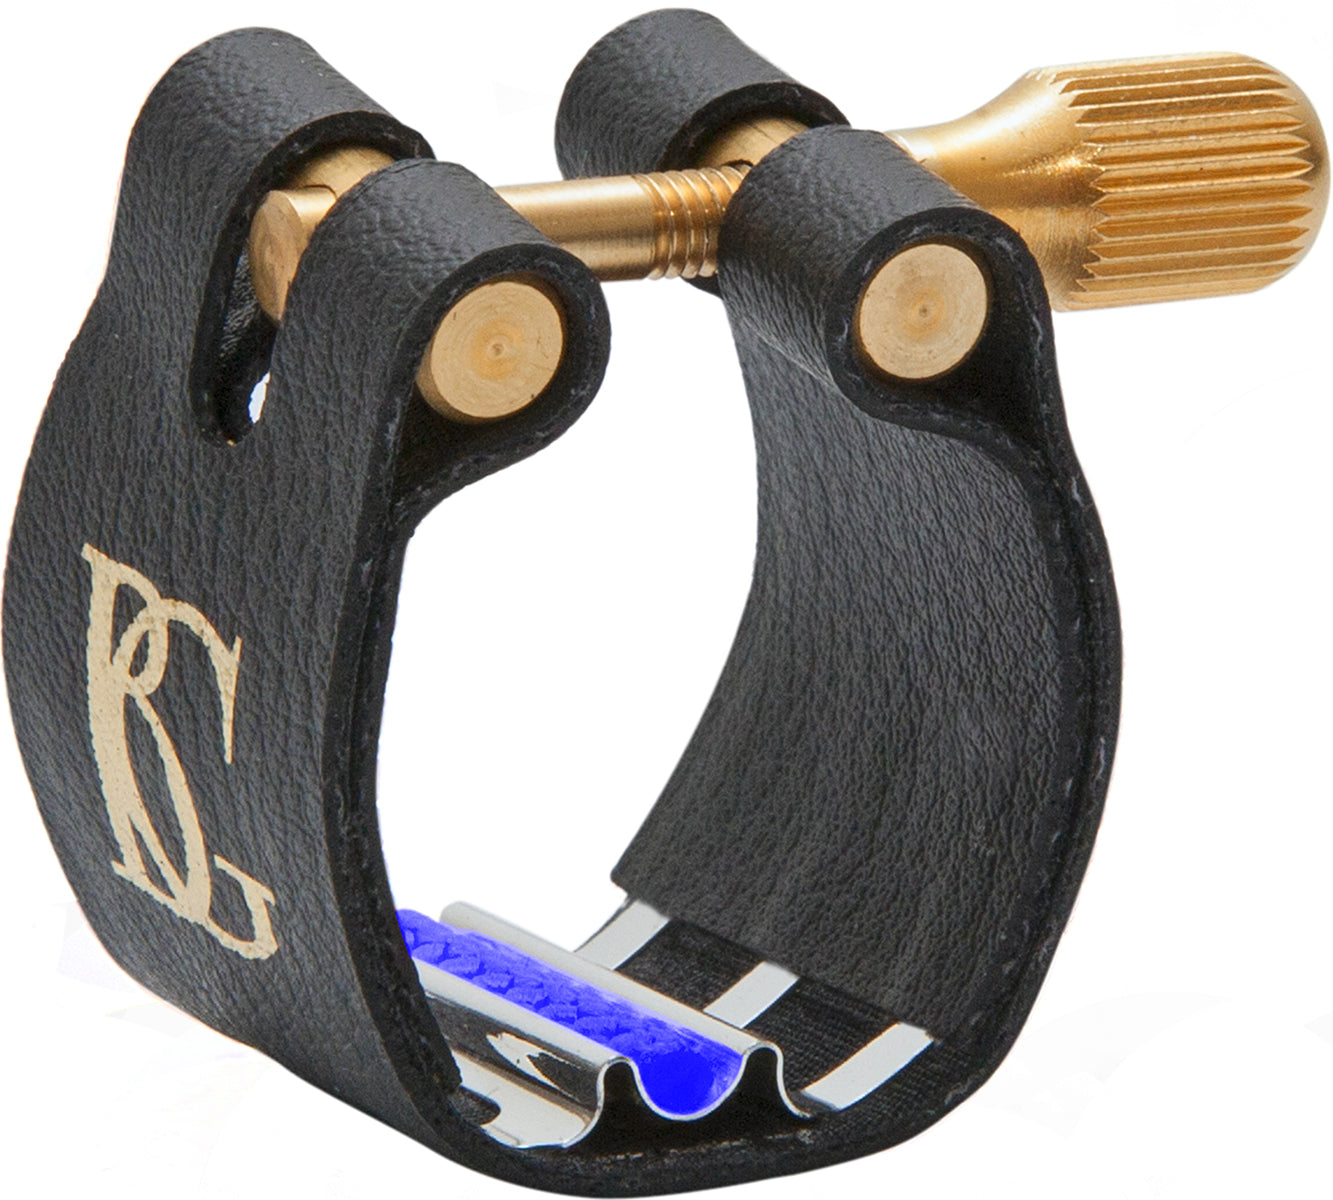 BG Ligature & Cap Alto Sax, Meyer Ebonite MP, Revelation Silver Jazz, Silver Plated Support, Blue Sling